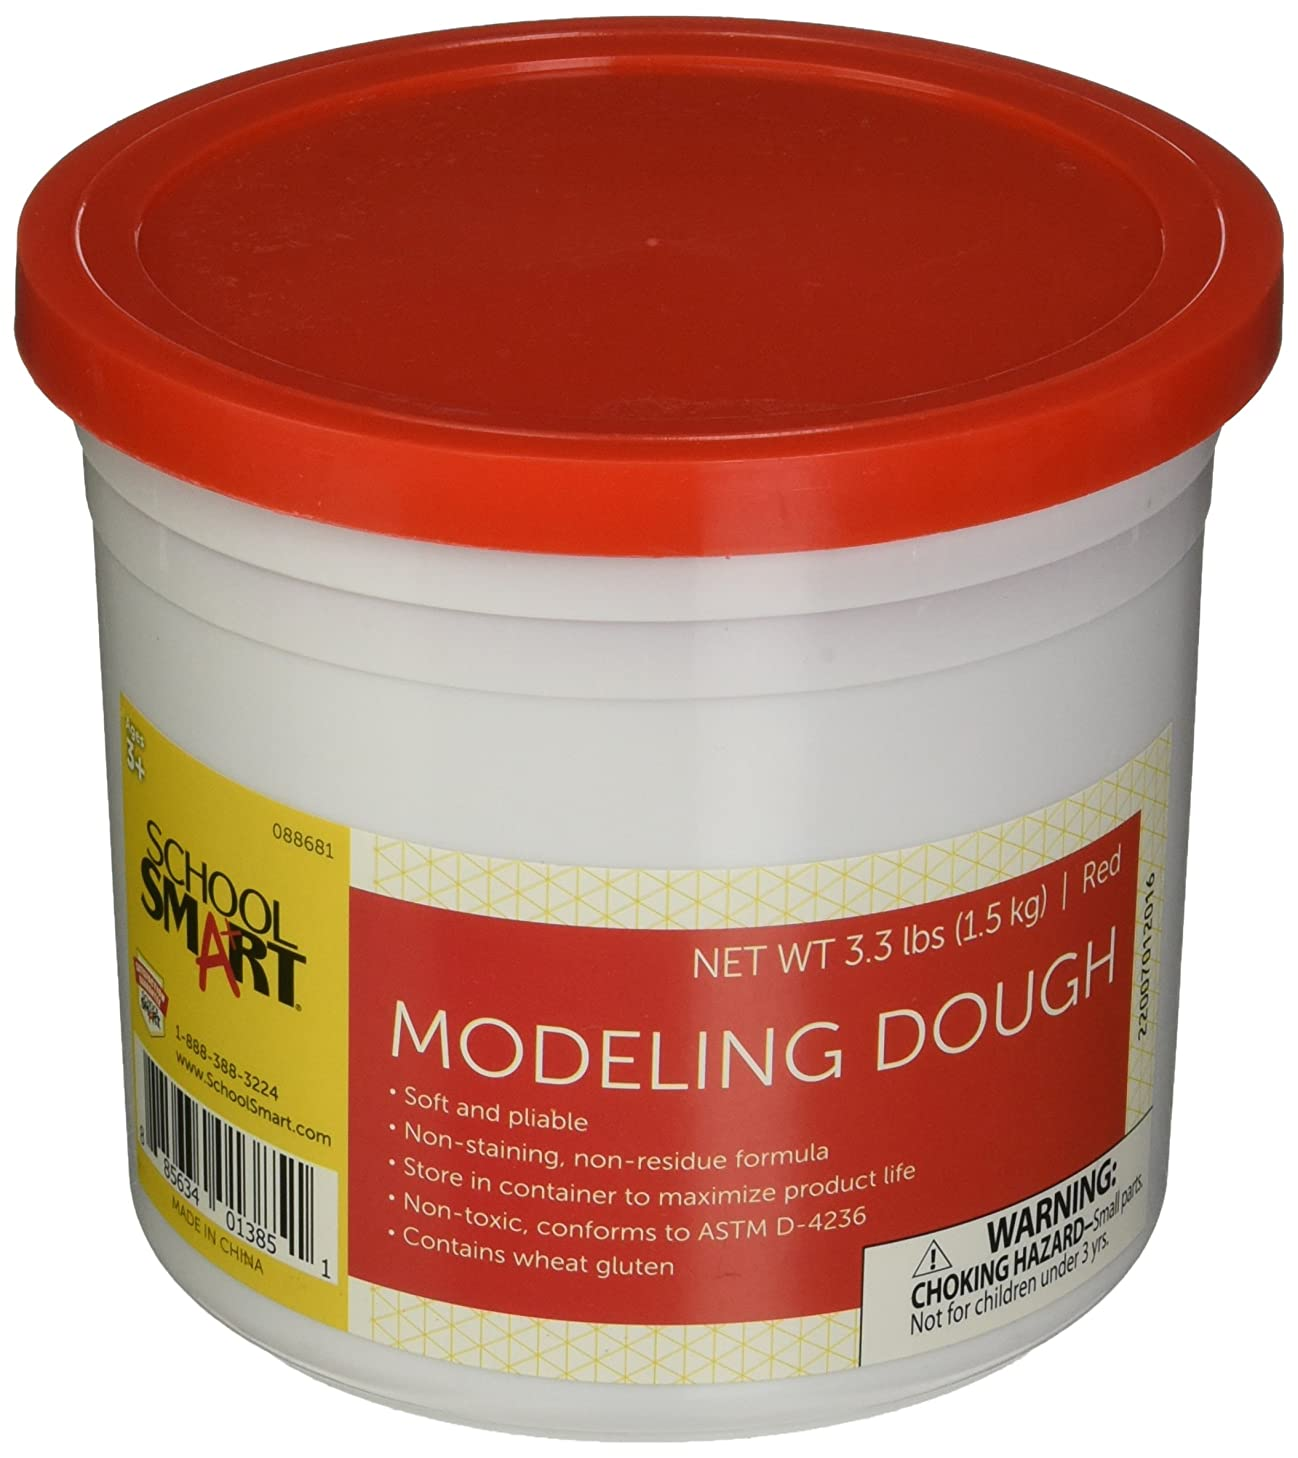 School Smart Non Toxic Modeling Dough - 3 1/3 pounds - Red